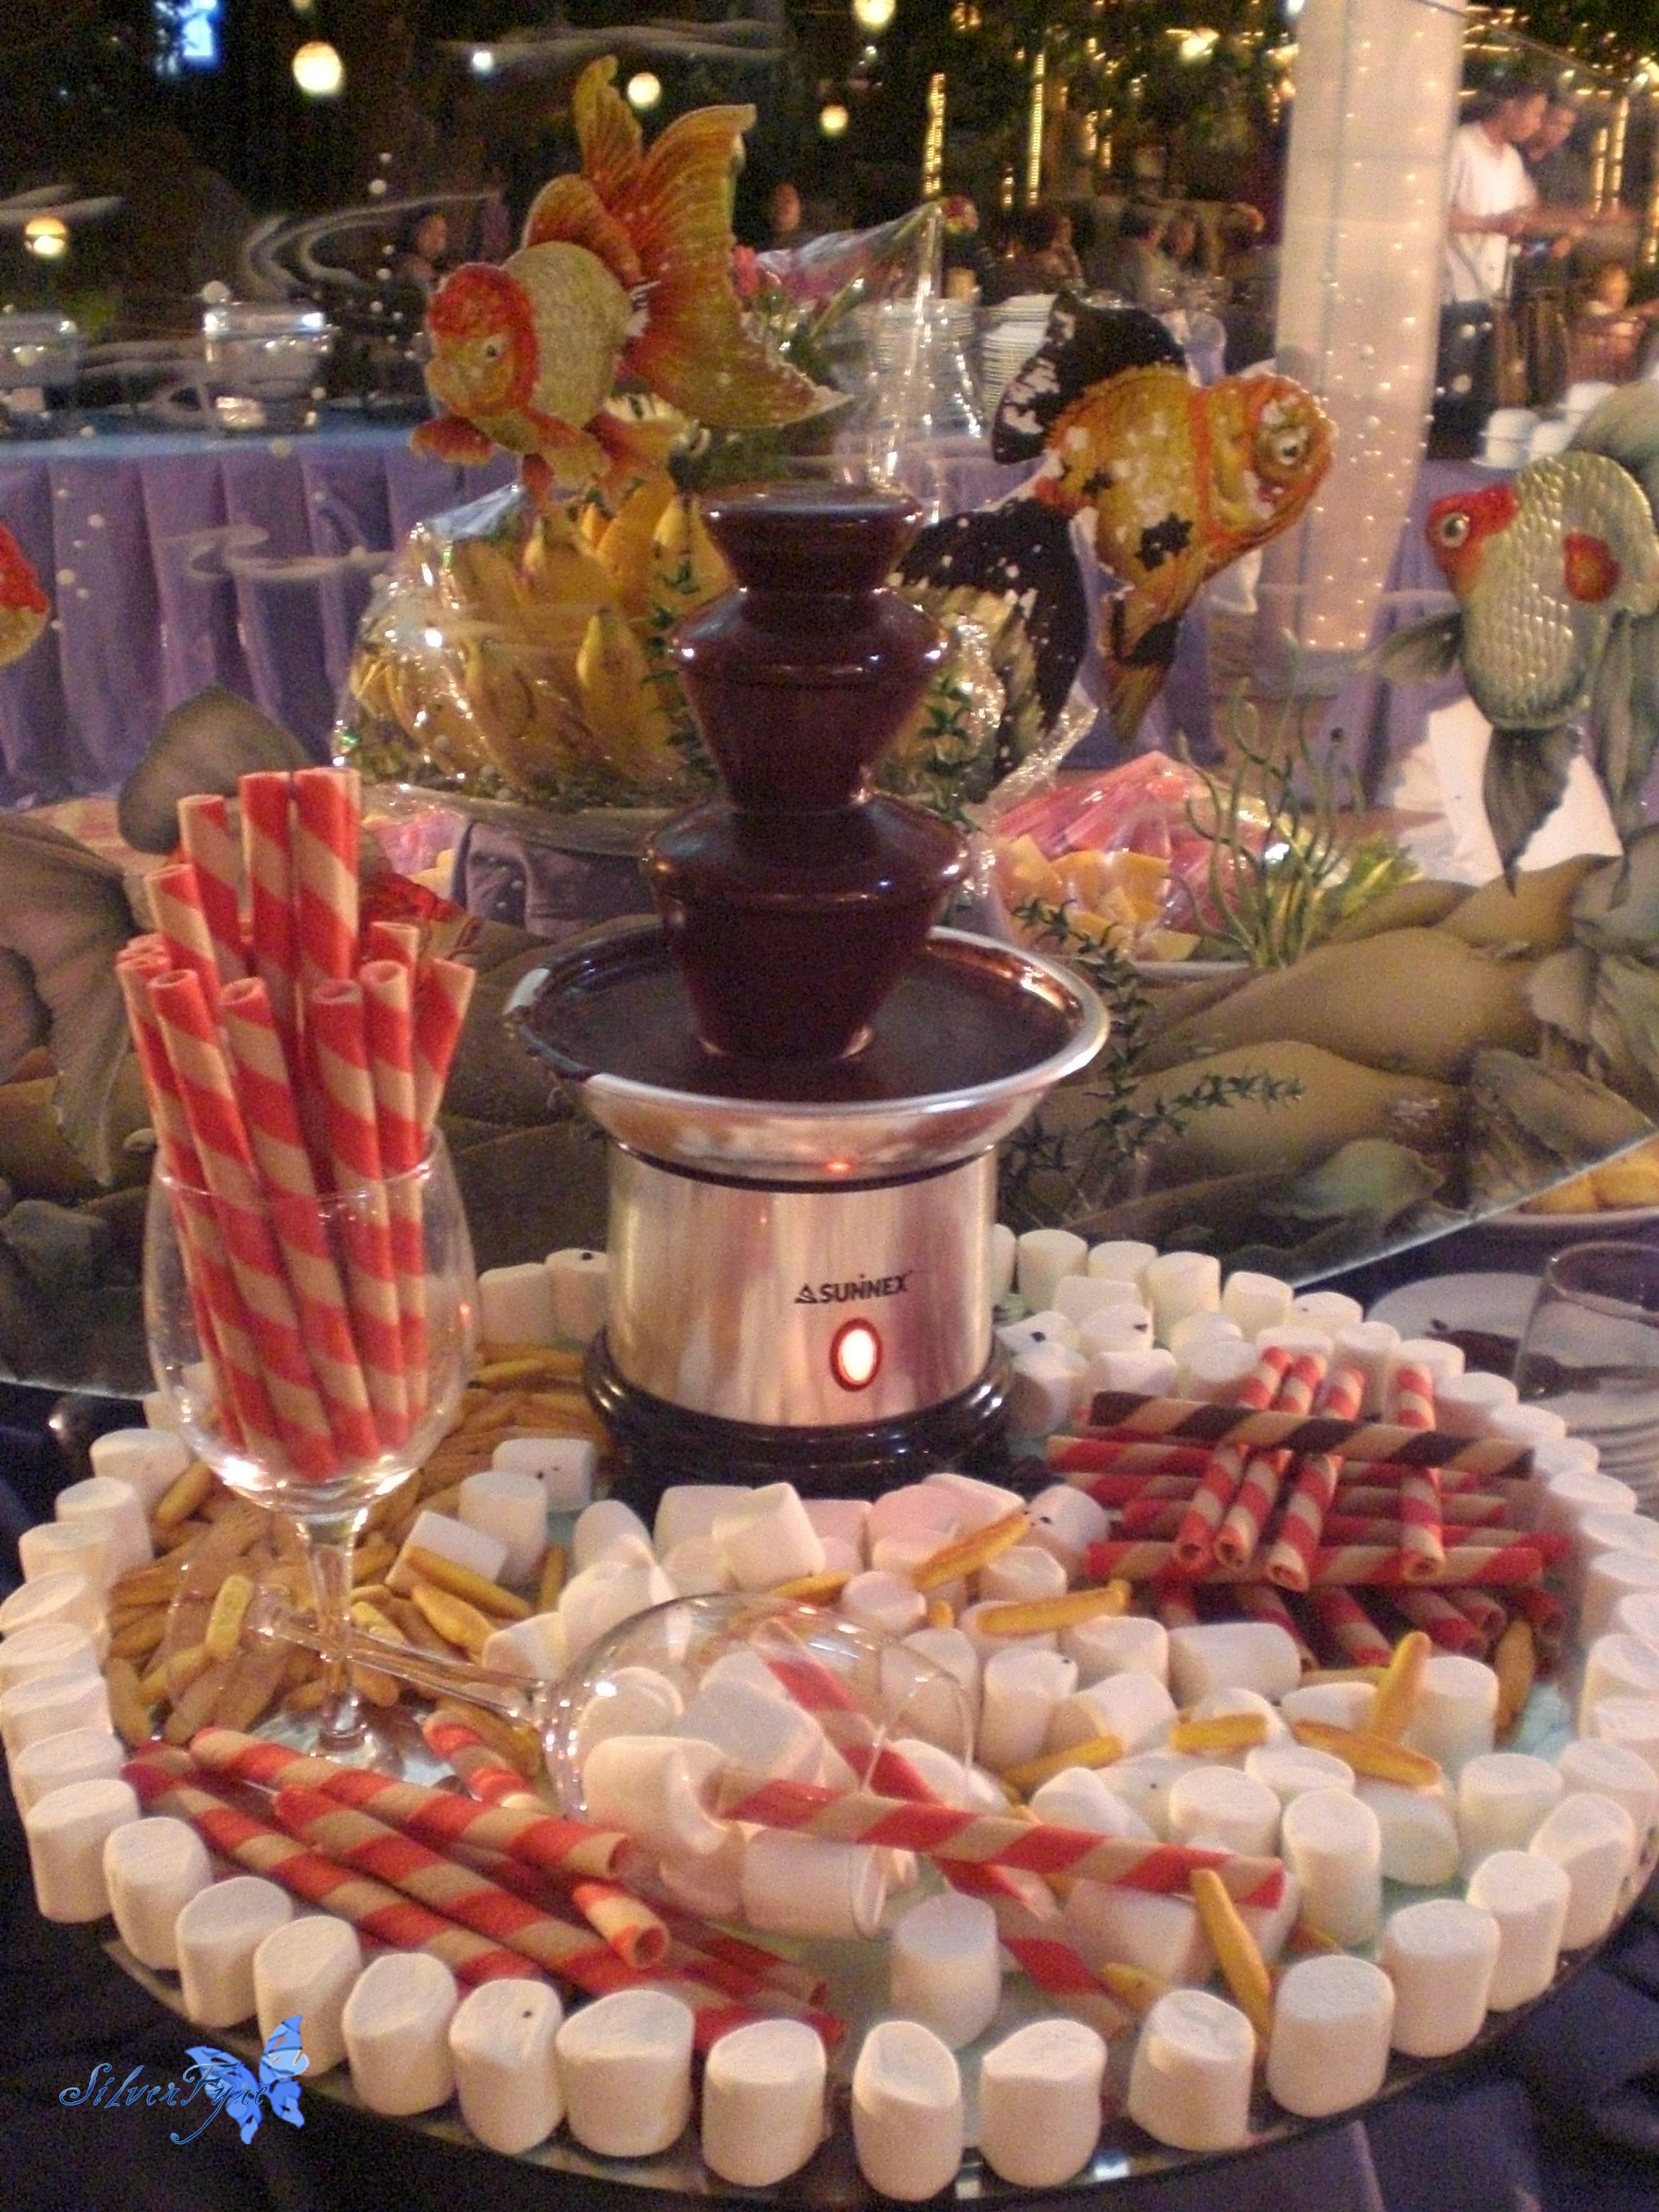 things: Chocolate Fountain 2 by bloodyblue on DeviantArt